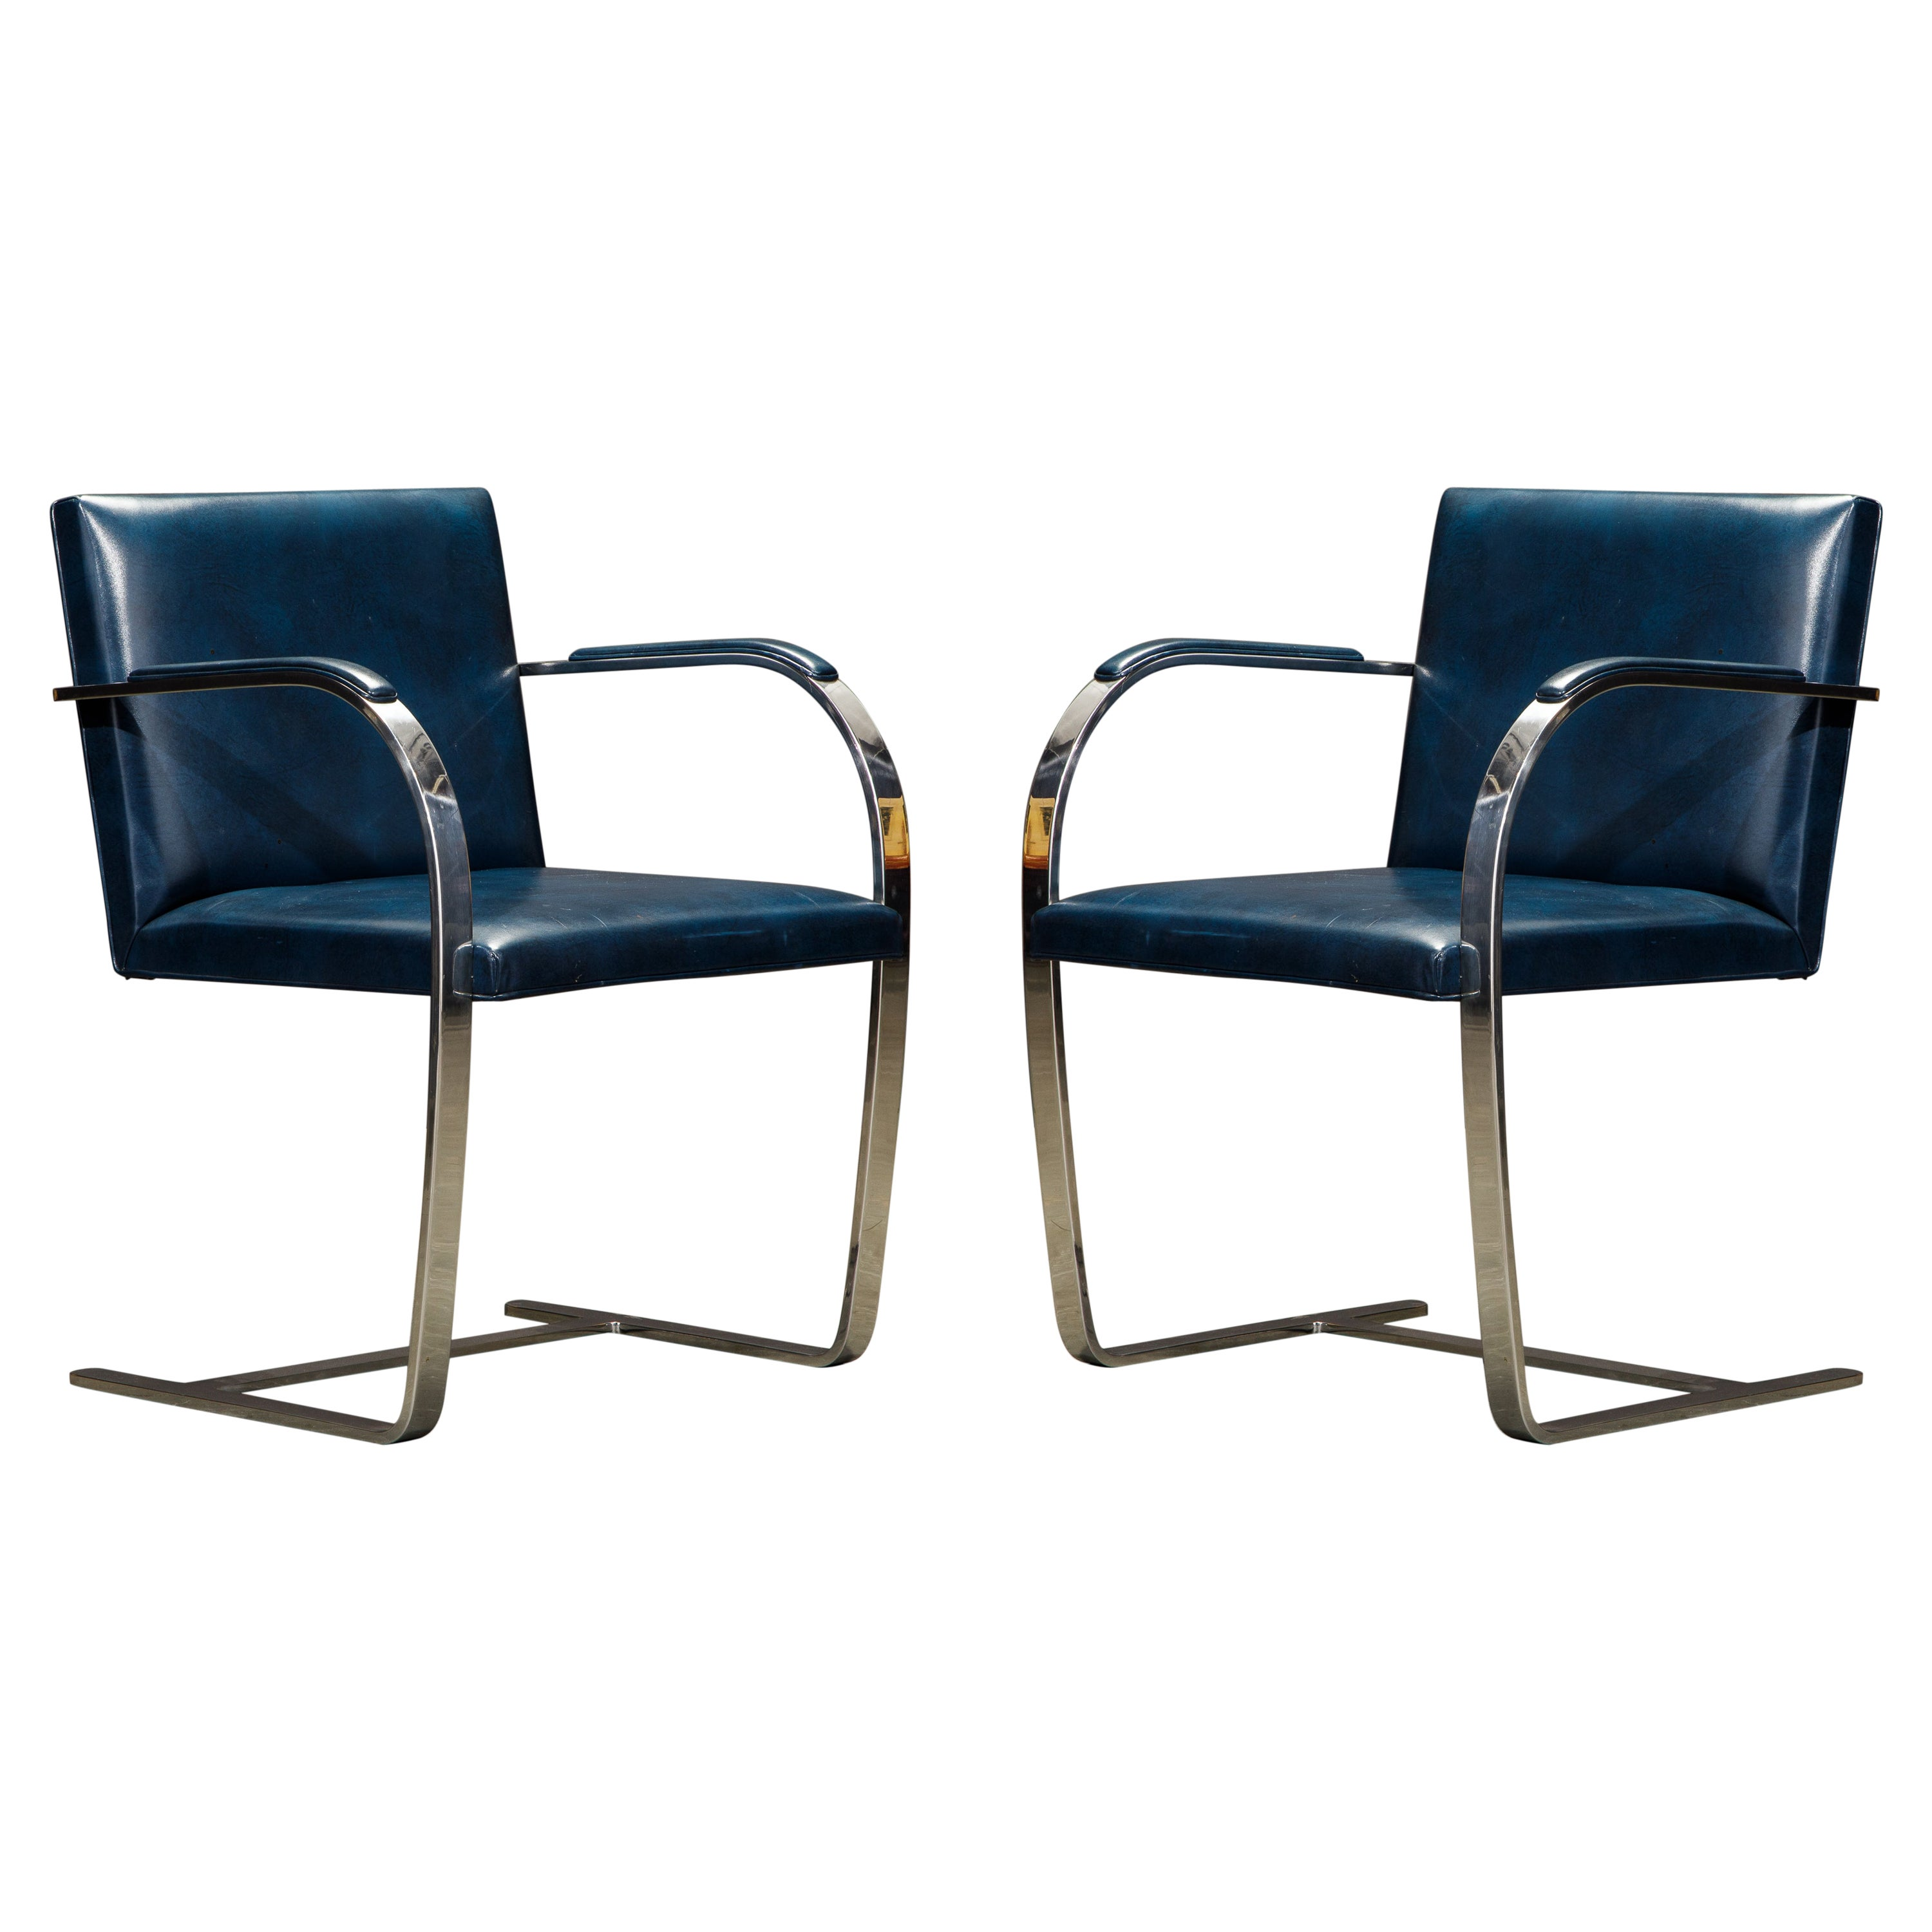 Knoll International Blue 'Brno' Armchairs by Mies van der Rohe, 1970s Signed